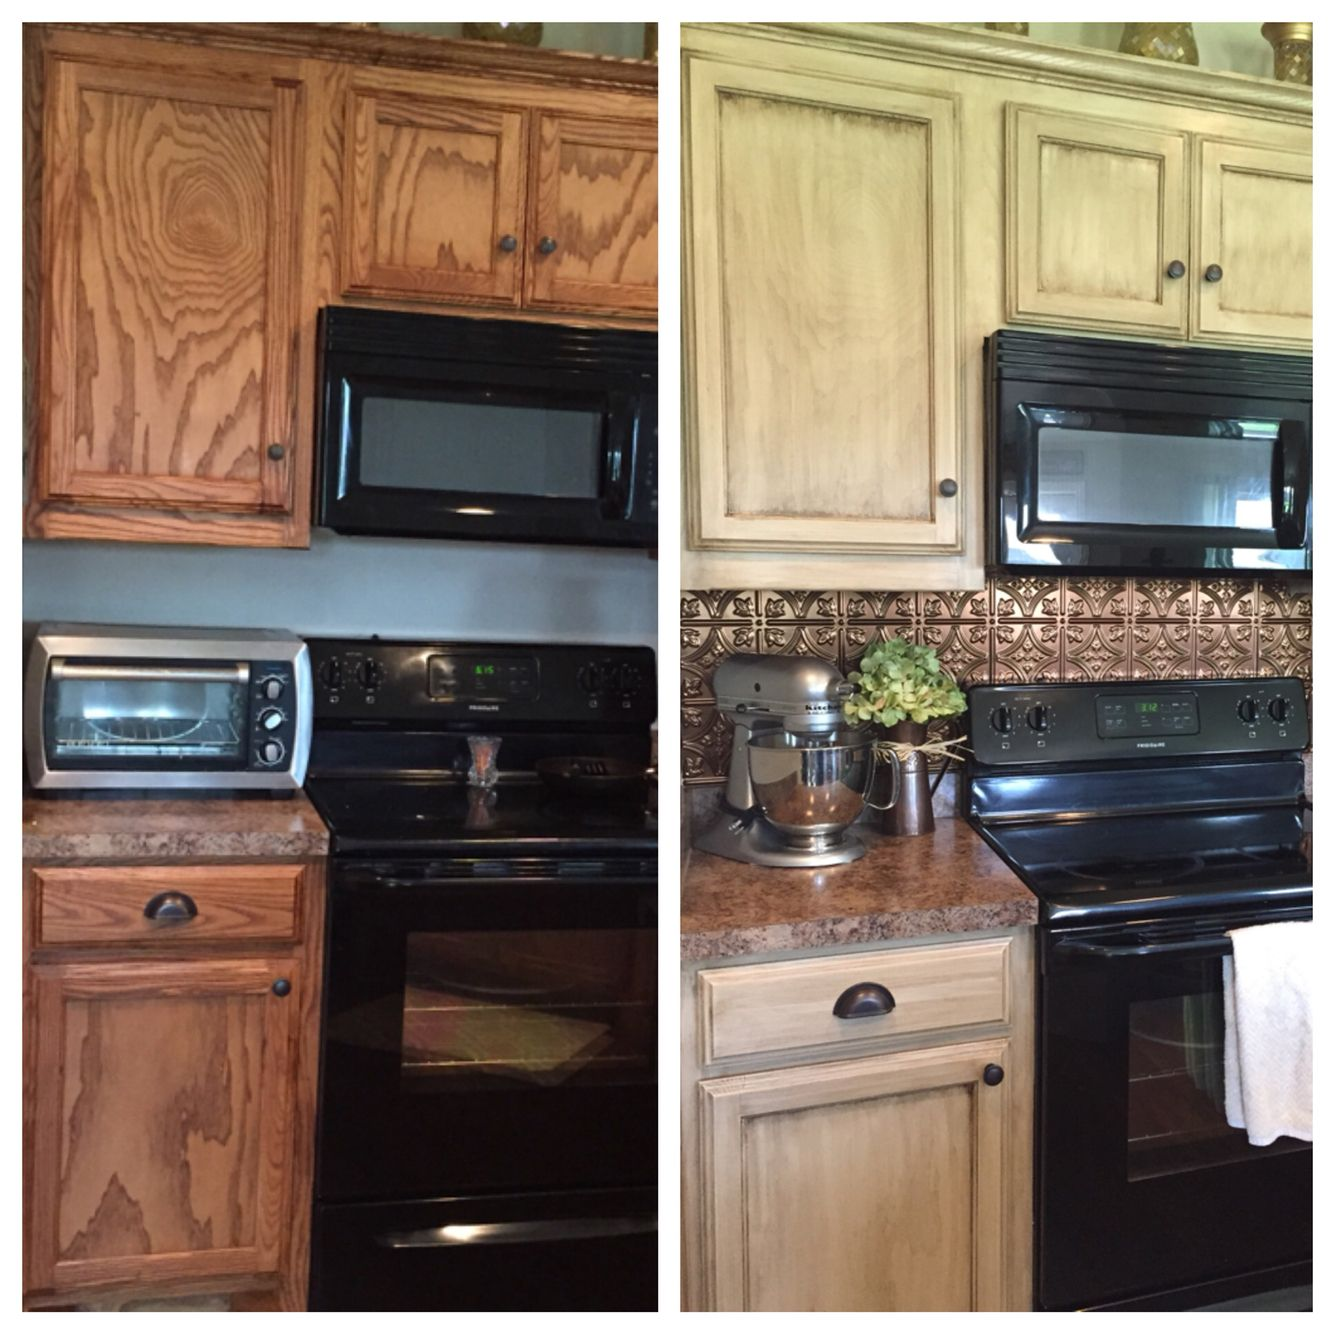 Painting Kitchen Cabinets With Rustoleum: Rustoleum Cabinet Transformation Before And After. Oak